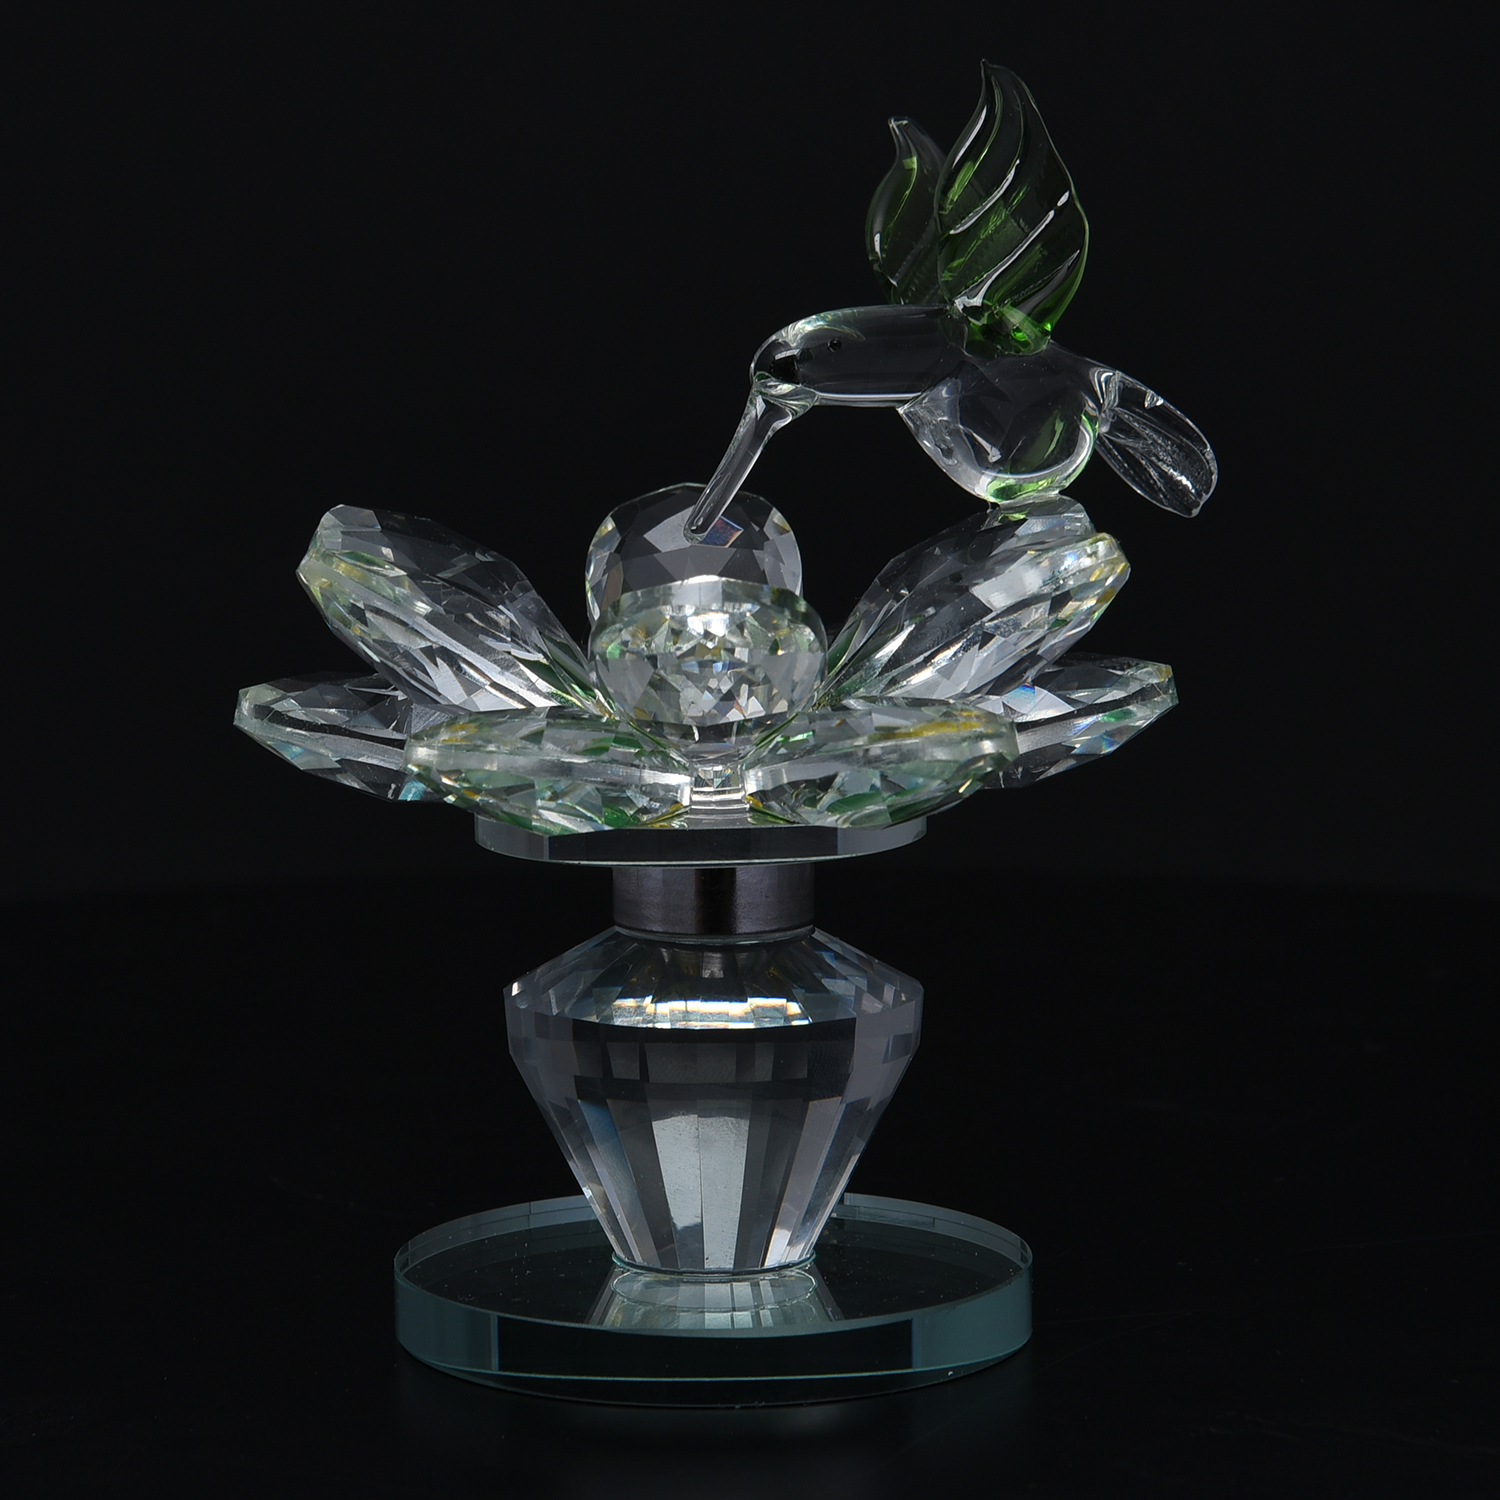 Yellow And Green Glass Rotatable Crystal Lotus Flower: crystal home decor